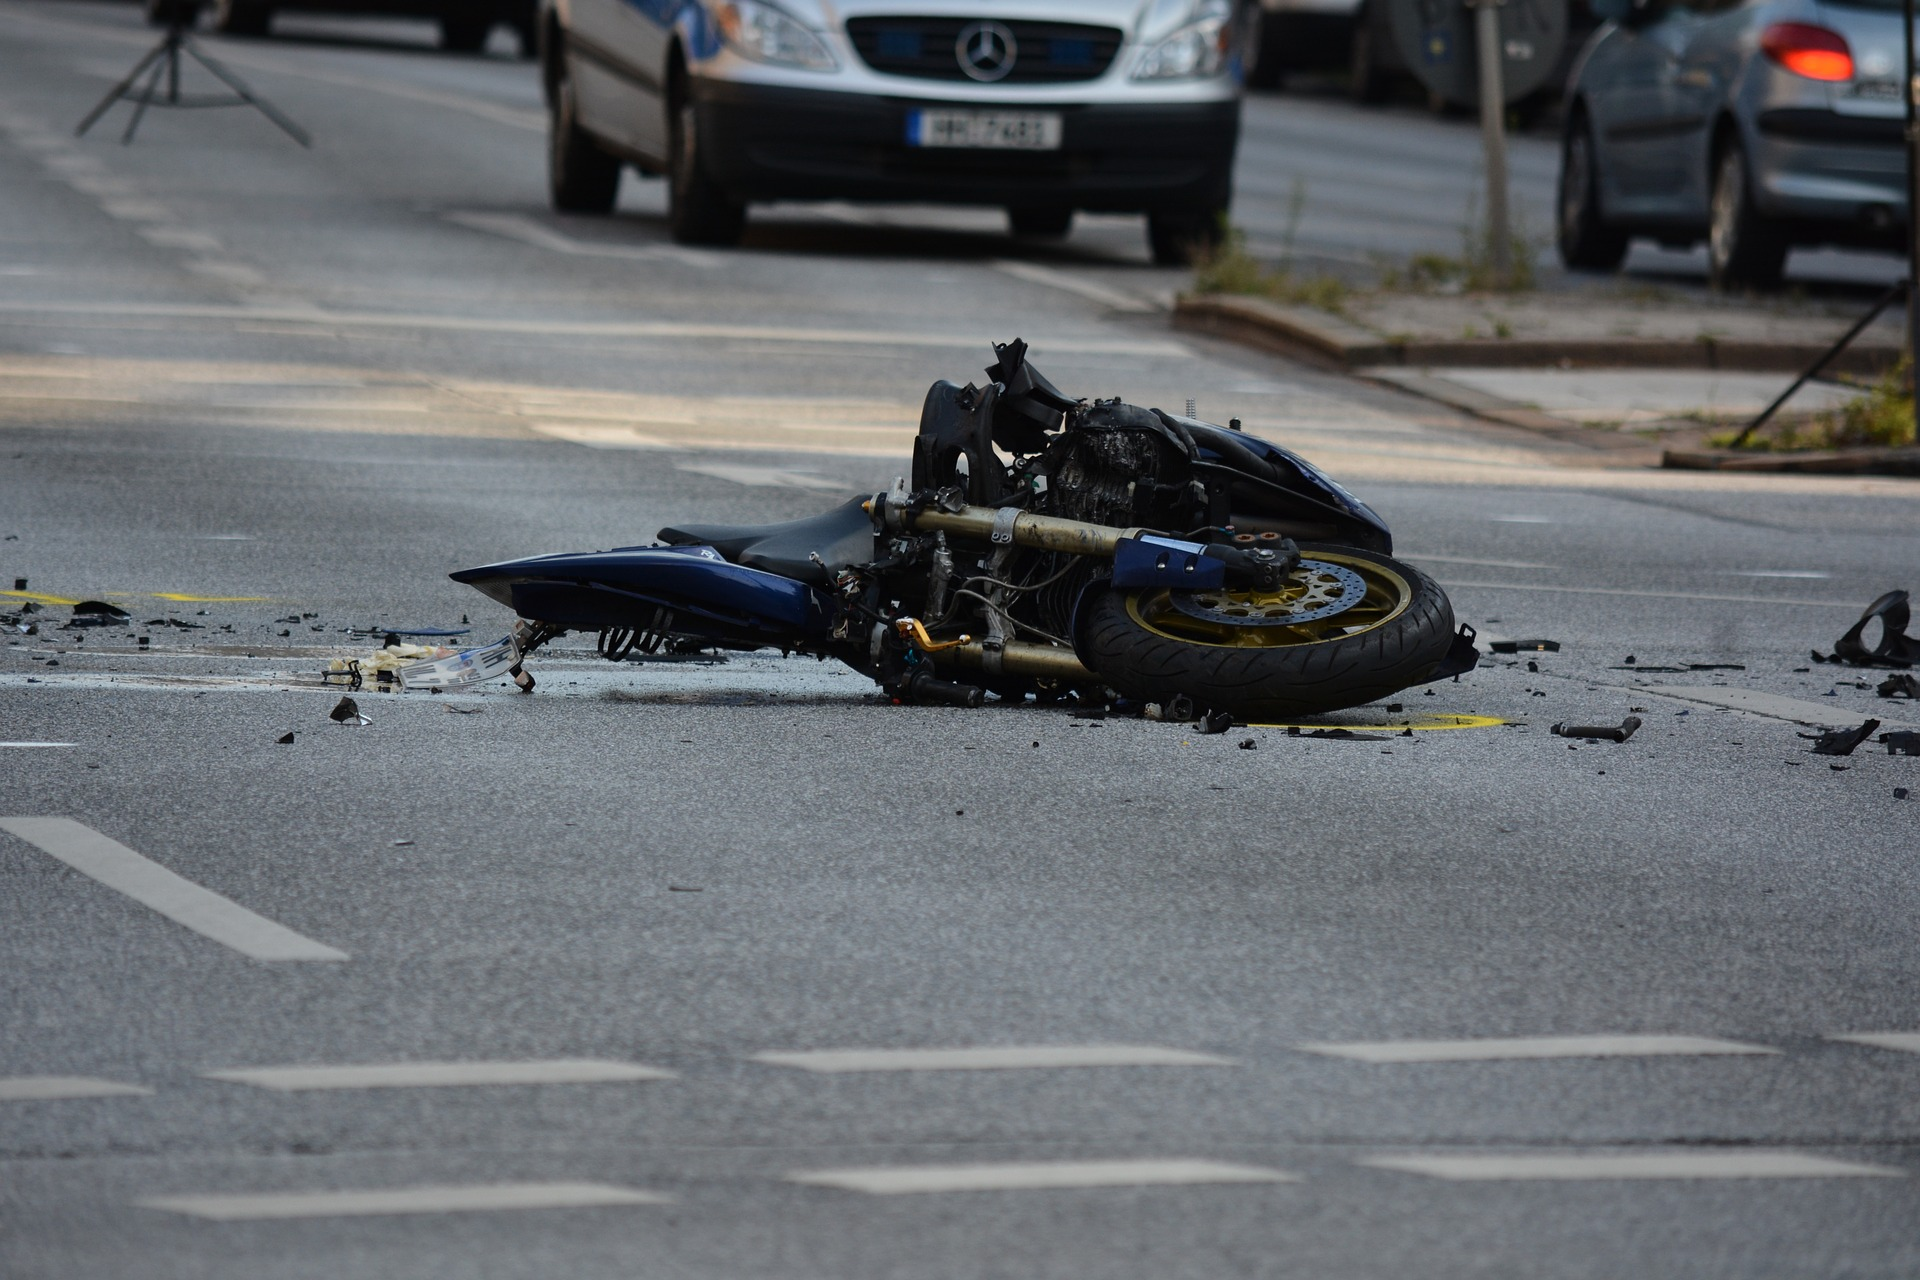 Abogado de Accidentes de Motocicleta